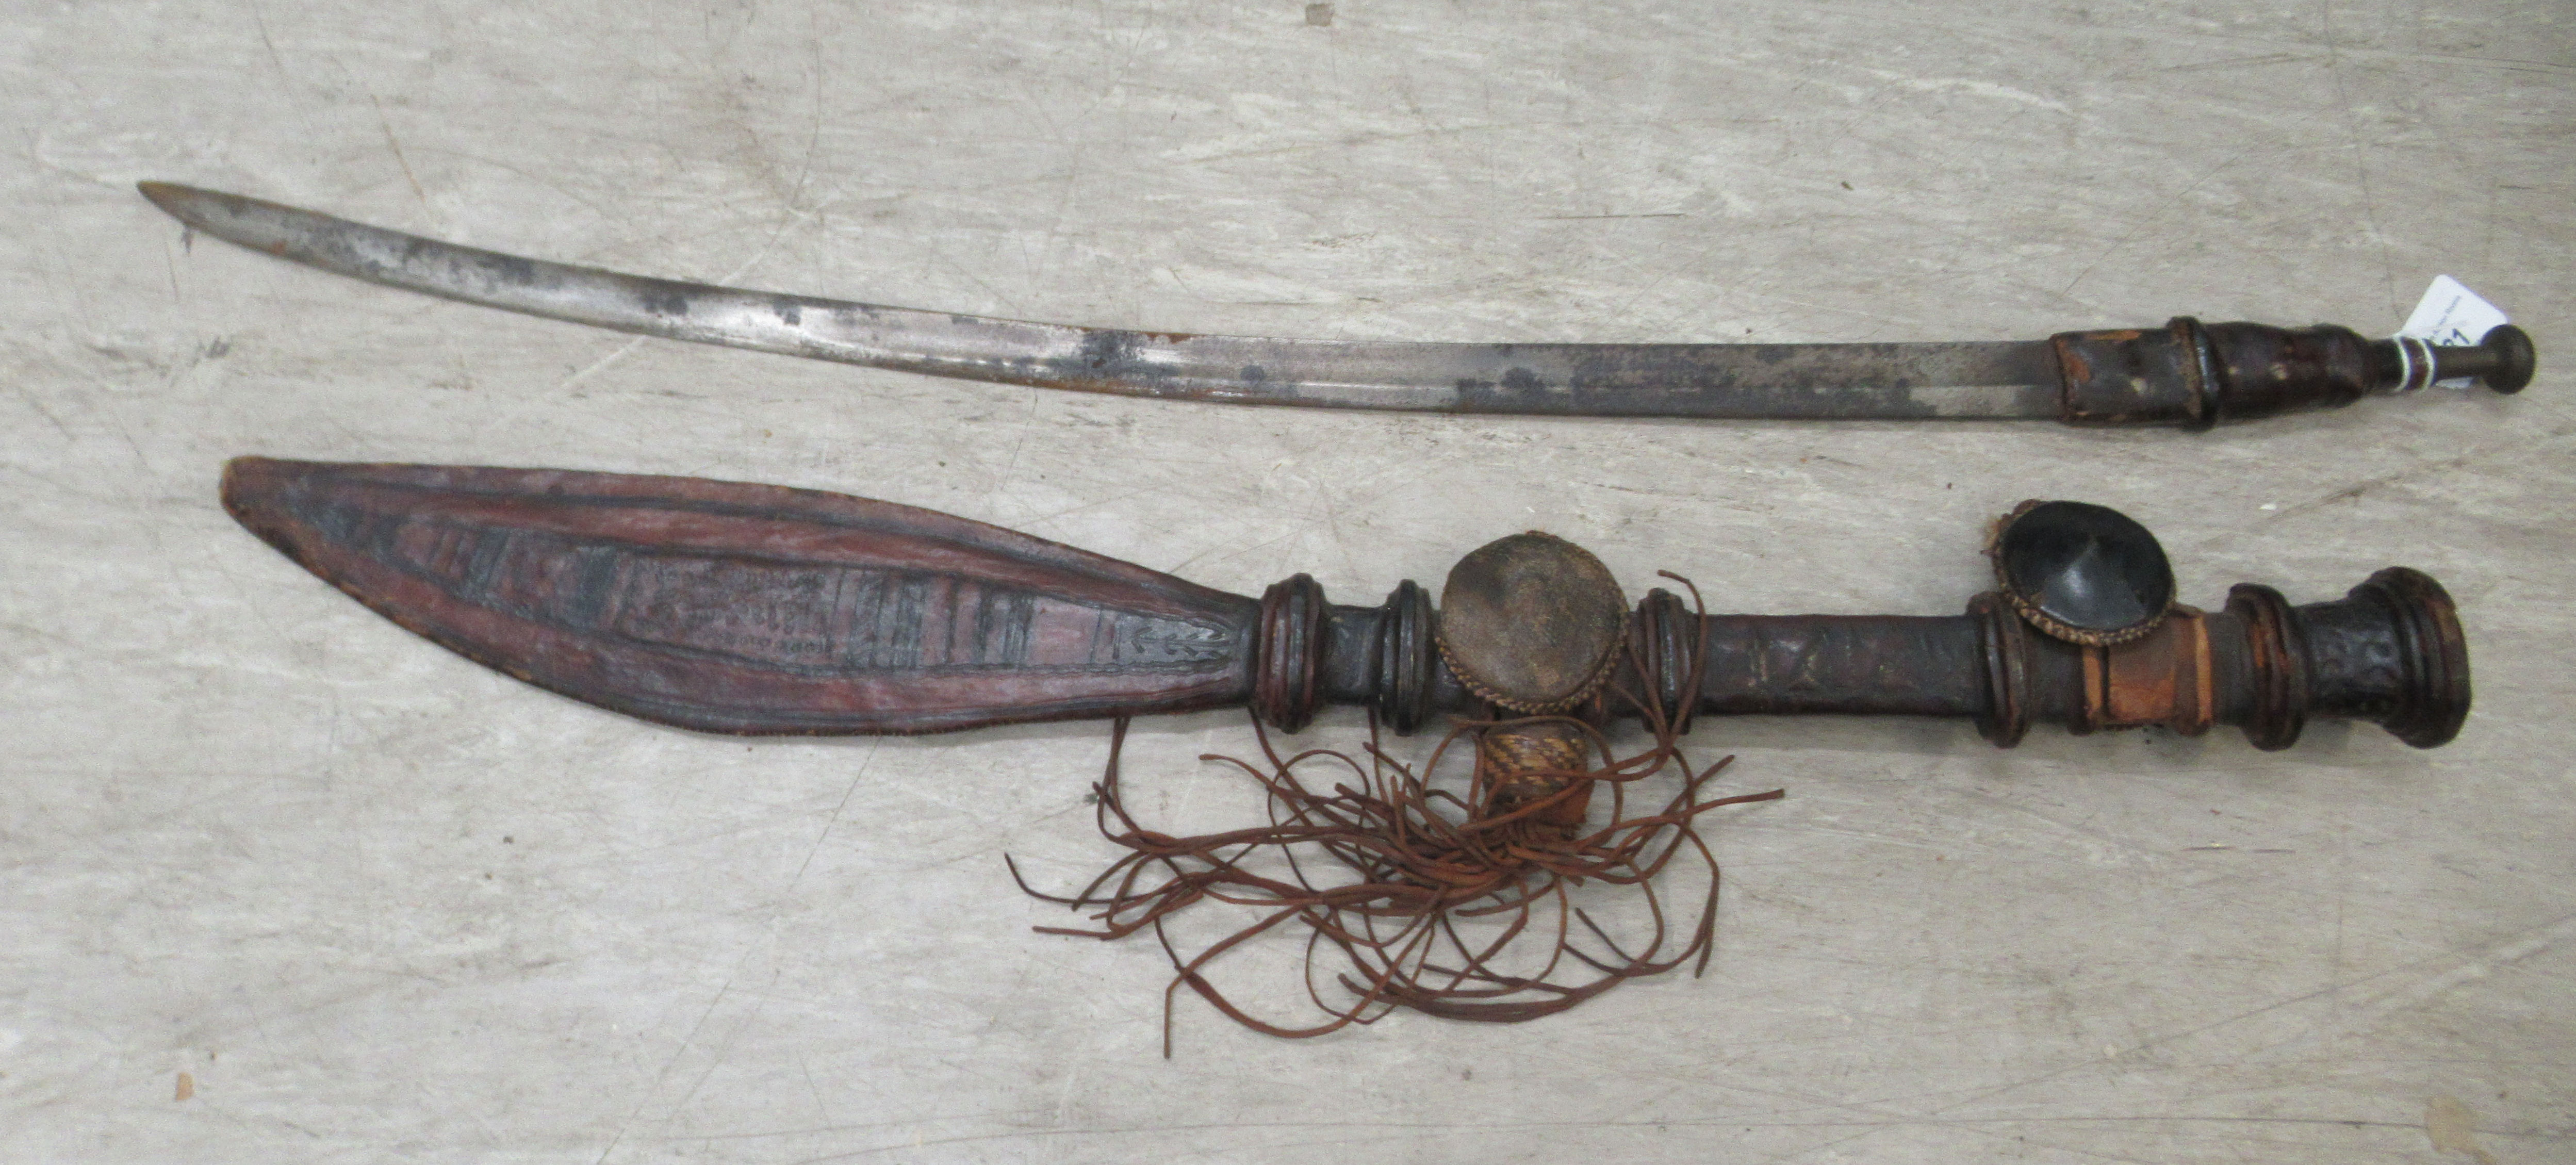 A late 19thC Islamic Tuareg Mandingo sword with a brown hide handle and decorative scabbard the